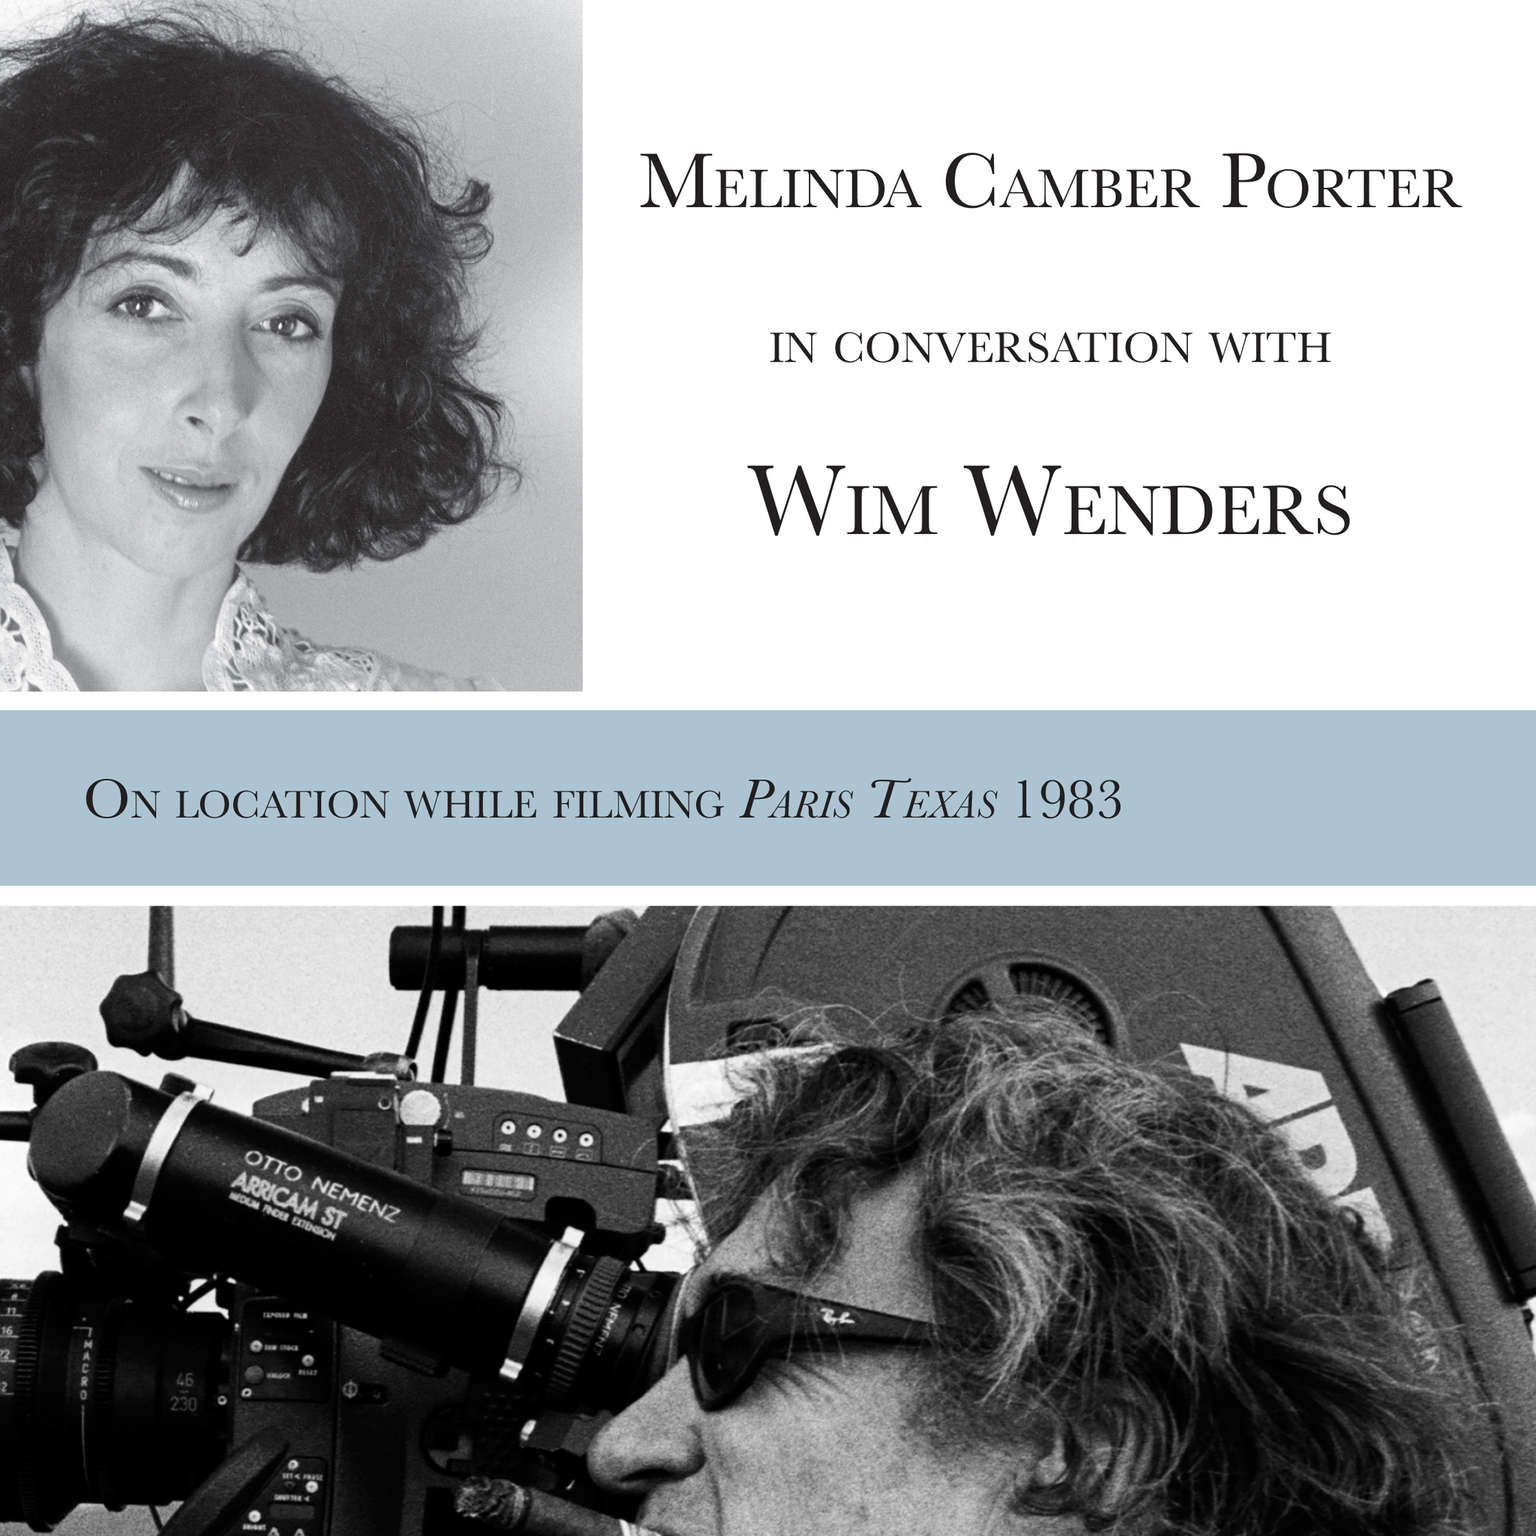 Melinda Camber Porter In Conversation With Wim Wenders, on the film set of Paris, Texas Audiobook, by Melinda Camber Porter